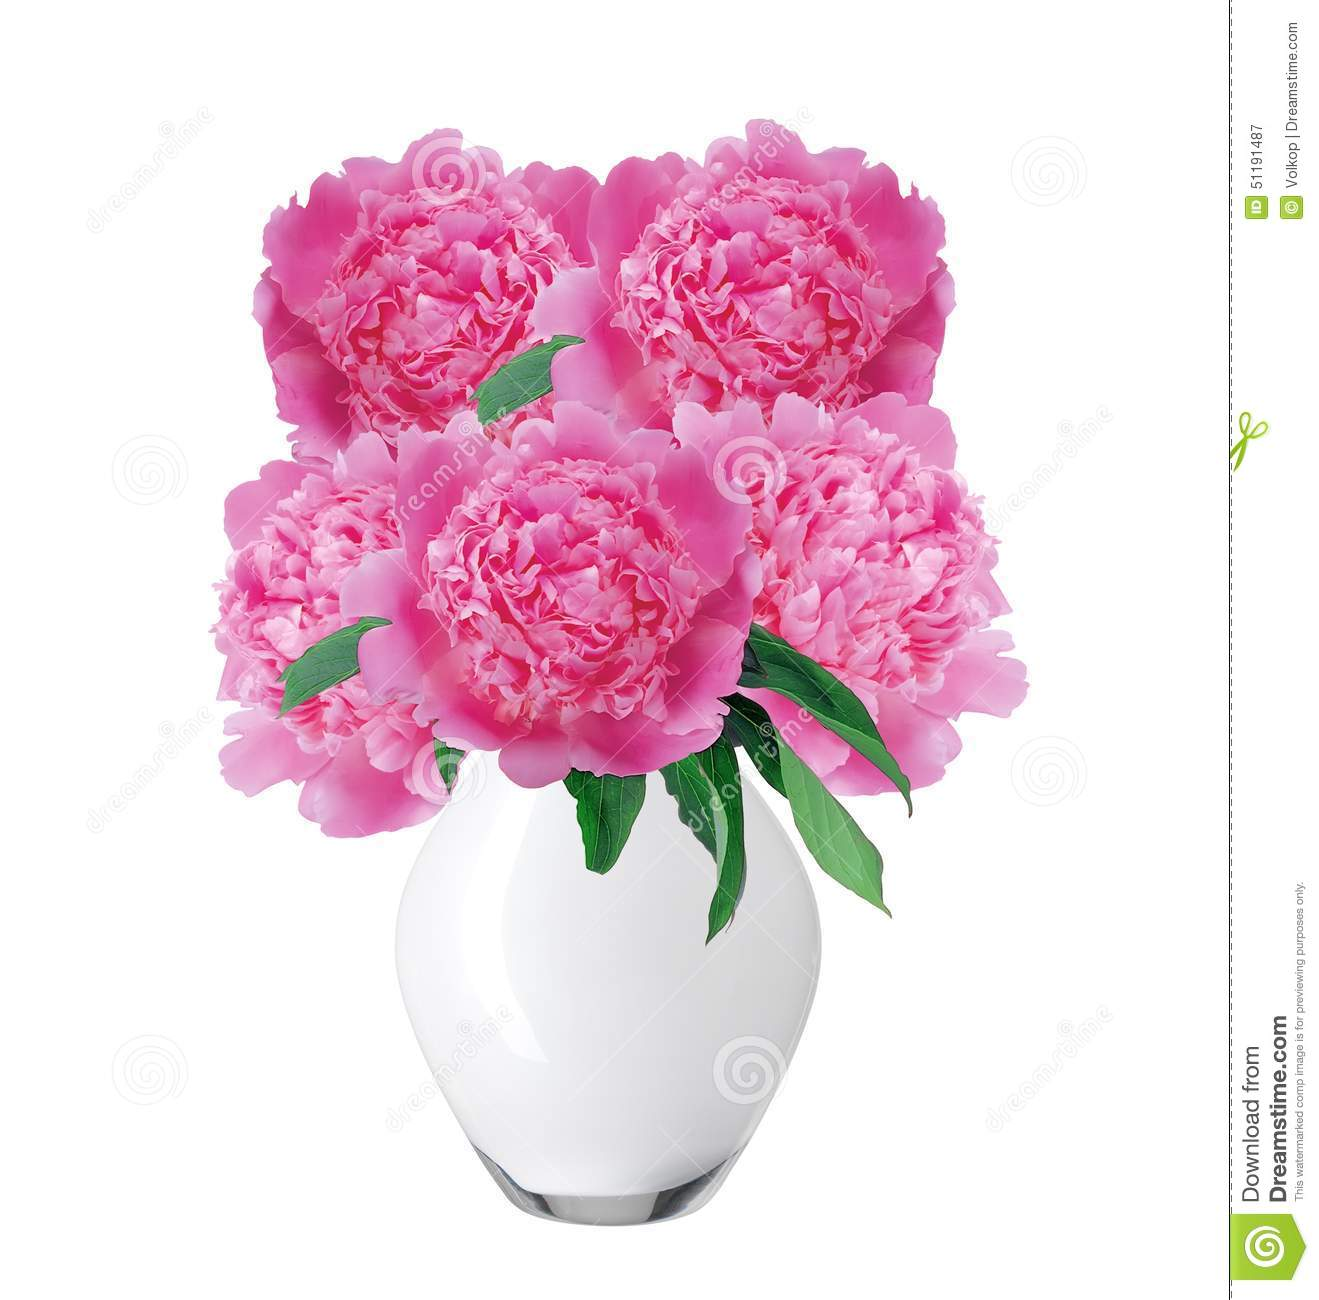 Beautiful Pink Peonies In Glass Vase With Bow Isolated On